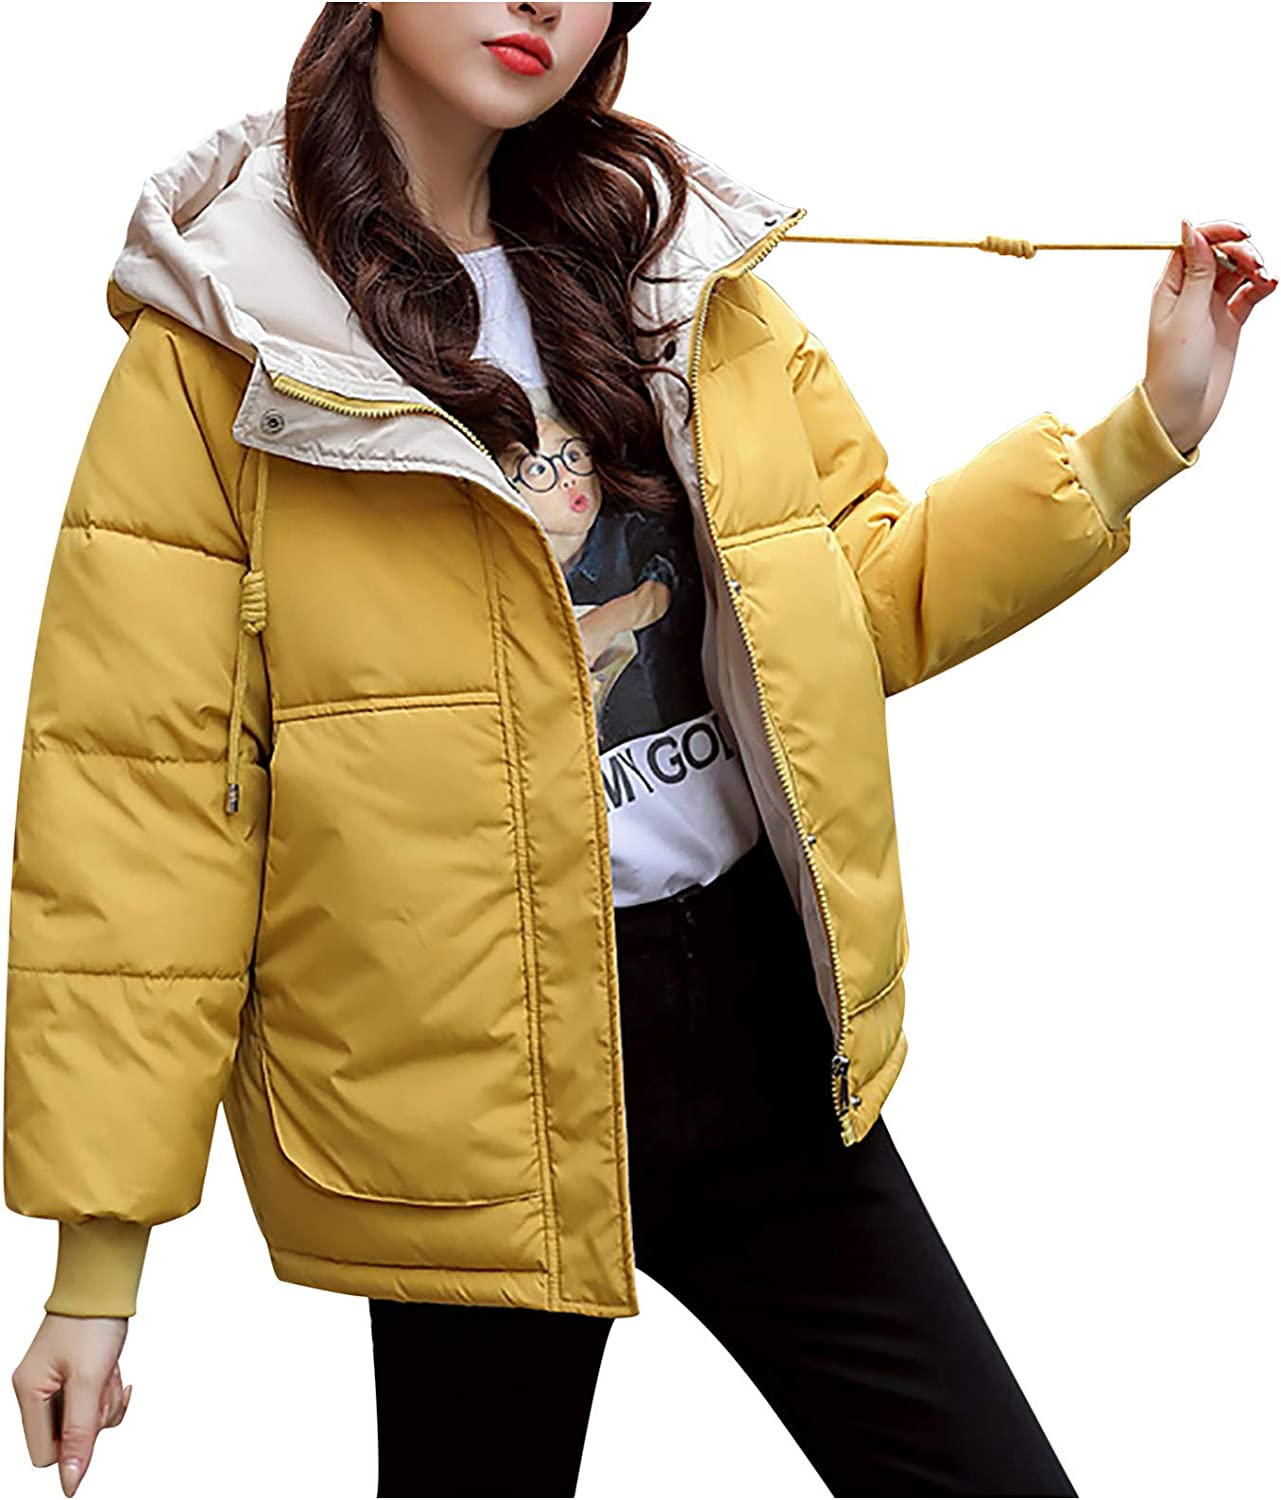 Max 43% OFF SERYU Women's Short Max 60% OFF Bread Coat Padded Oute Hooded Jacket Thicken